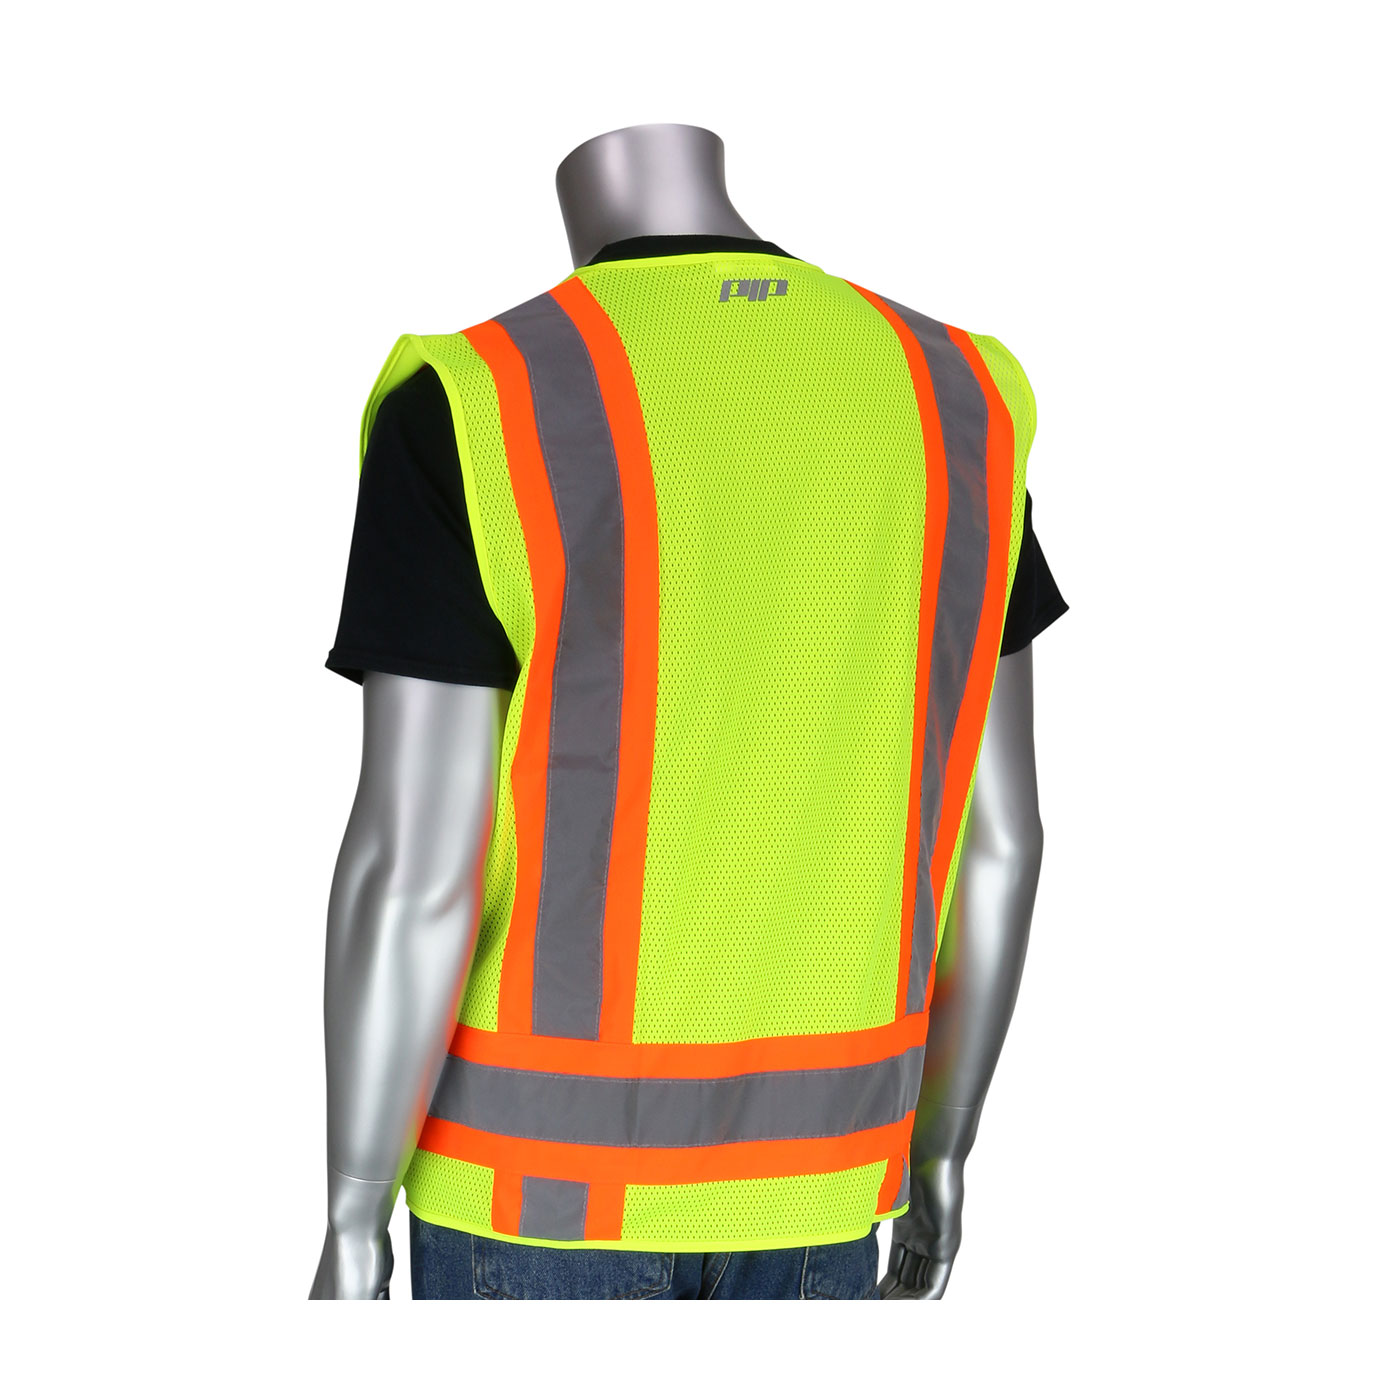 PIP® ANSI Type R Class 2 Two-Tone Eleven Pocket Surveyors Mesh Vest #302-0500M-LY